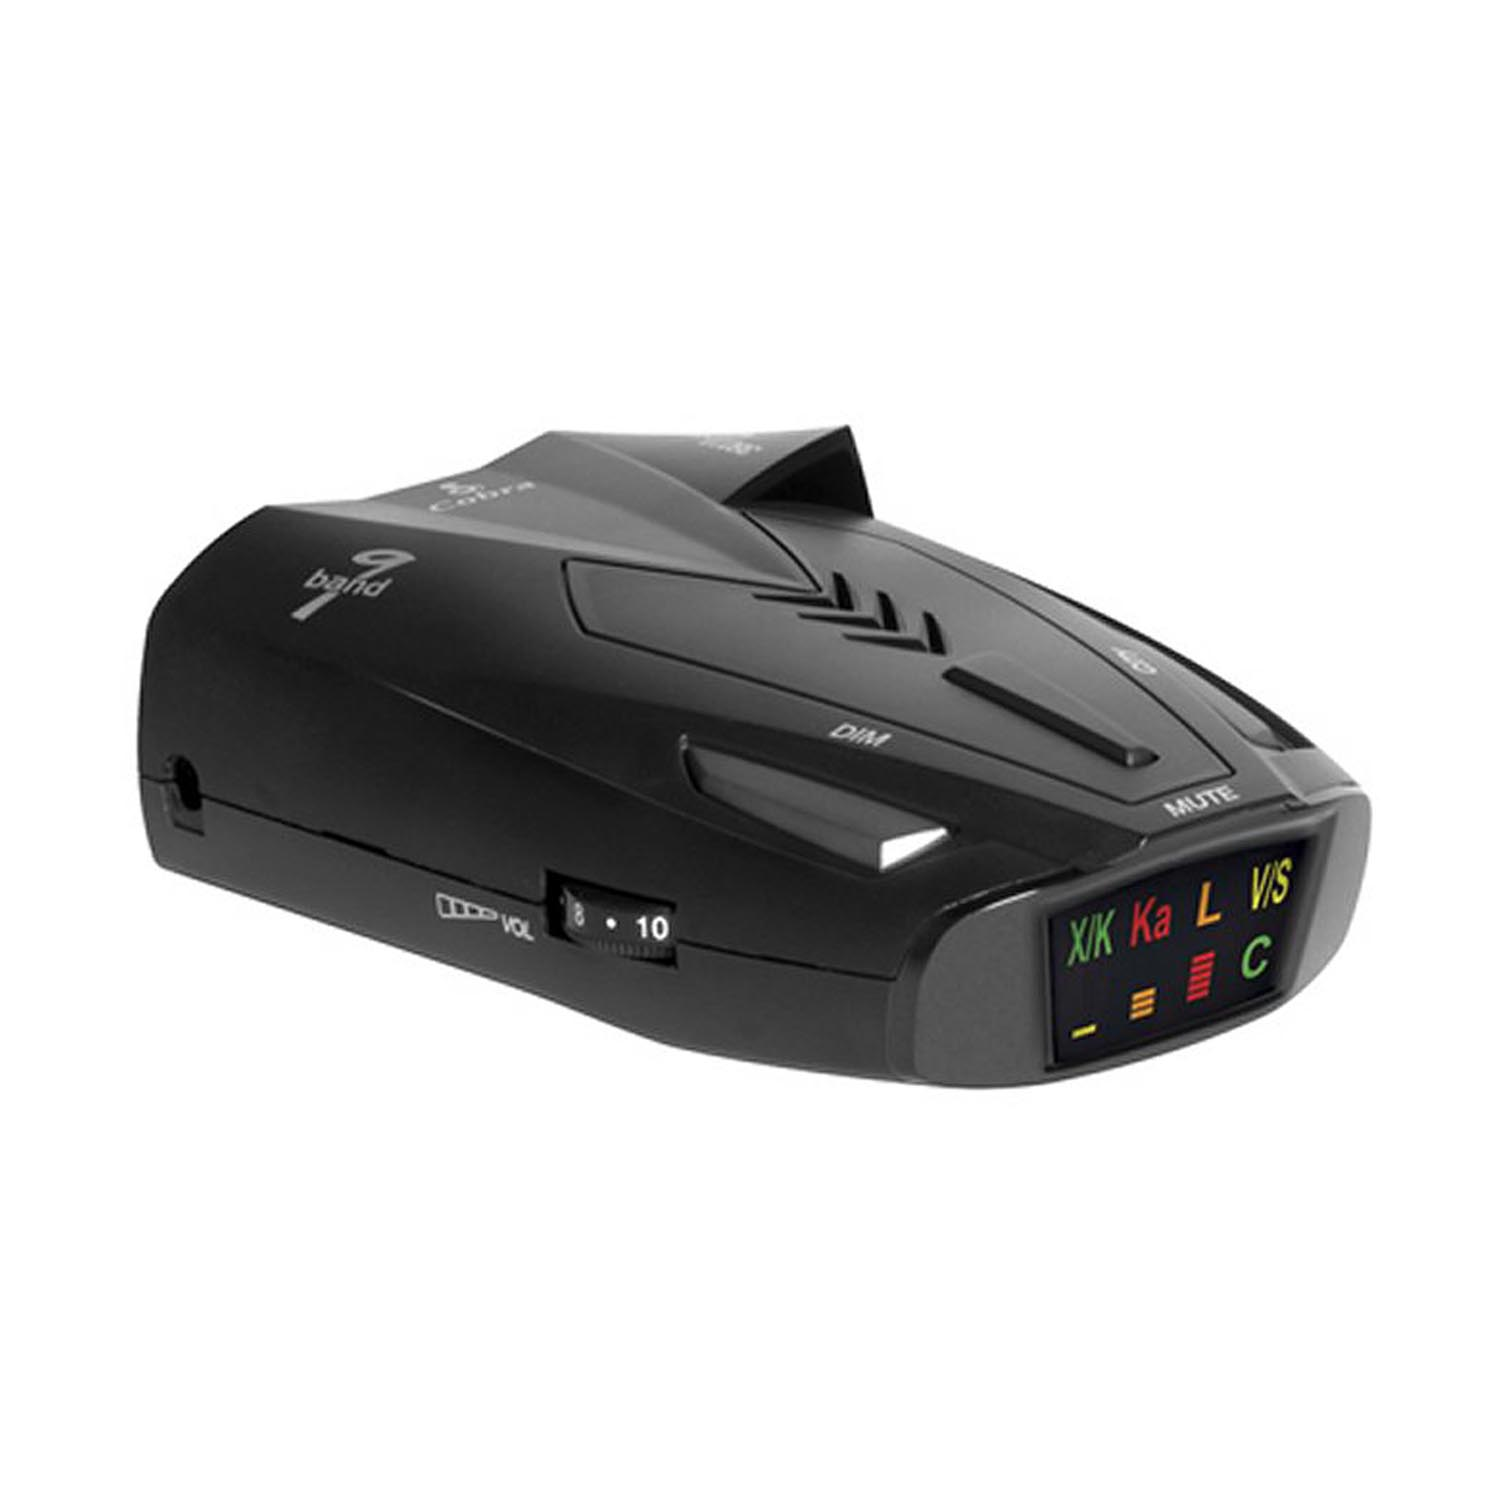 Buy Cobra 9 Band Laser Police Radar Detector with Safety Alert & LaserEye | ESD9275 by Cobra Electronics